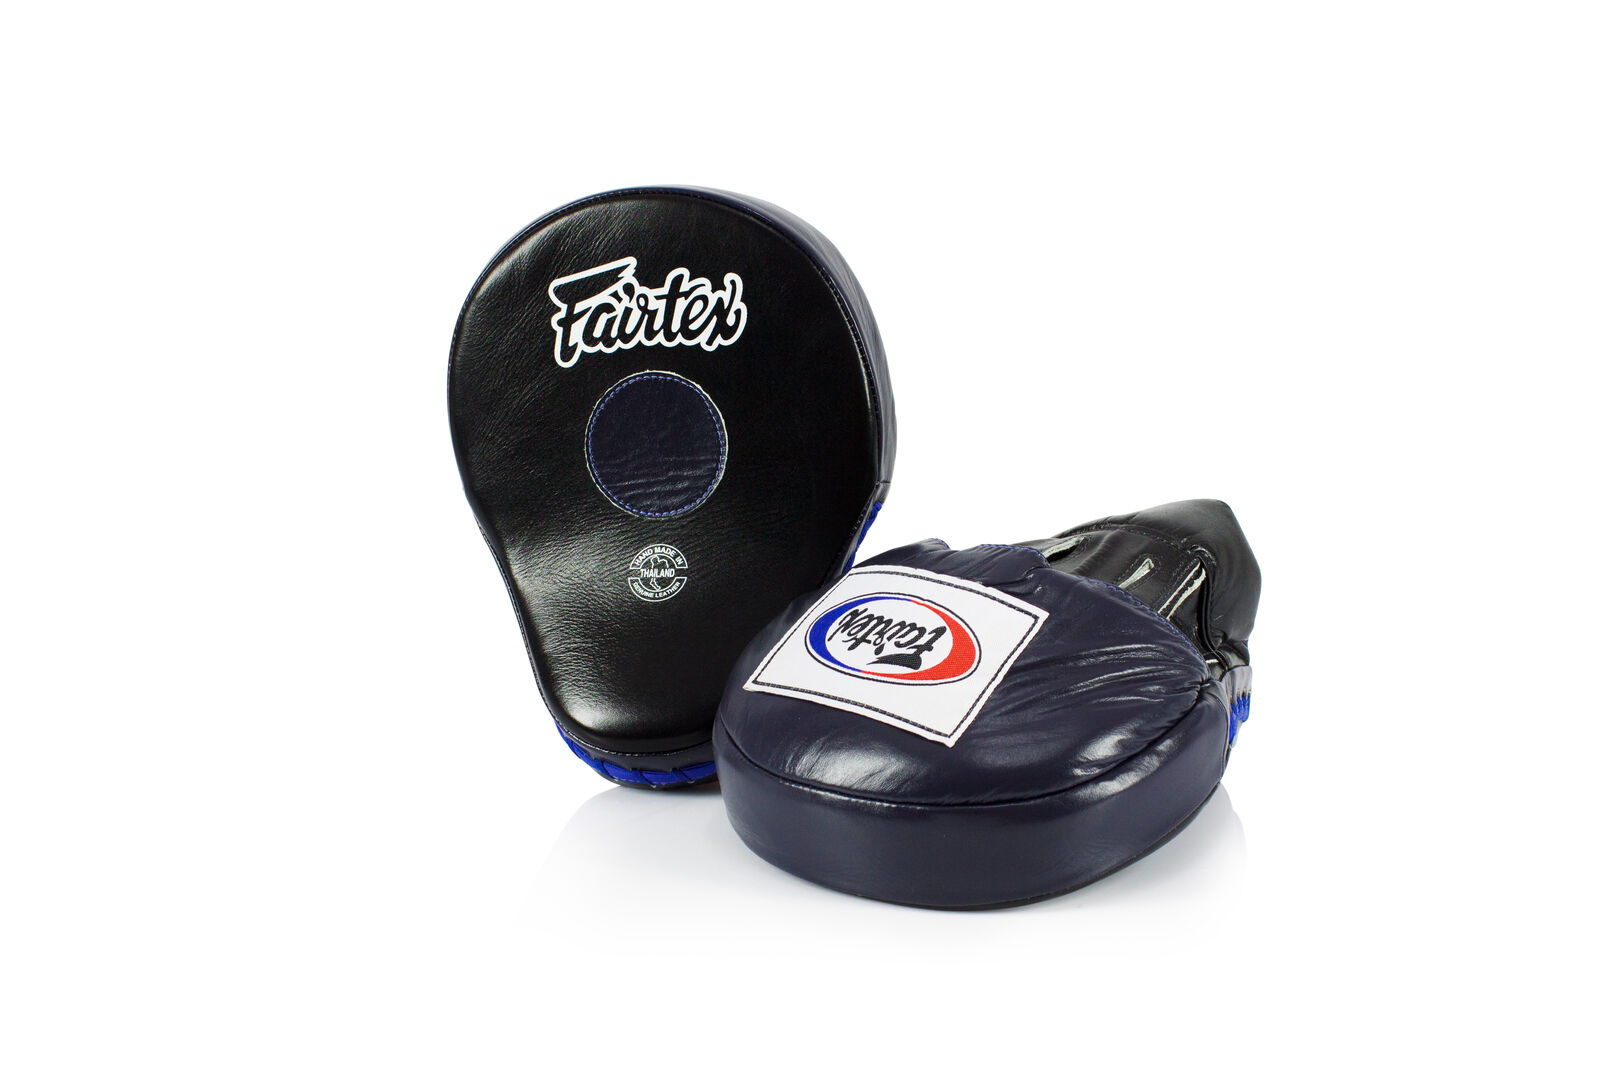 Fairtex THE ULTIMATE BOX mano Guantoni imbottiti in Pelle Trainer Guantoni imbottiti arti marziali ACCESSORI